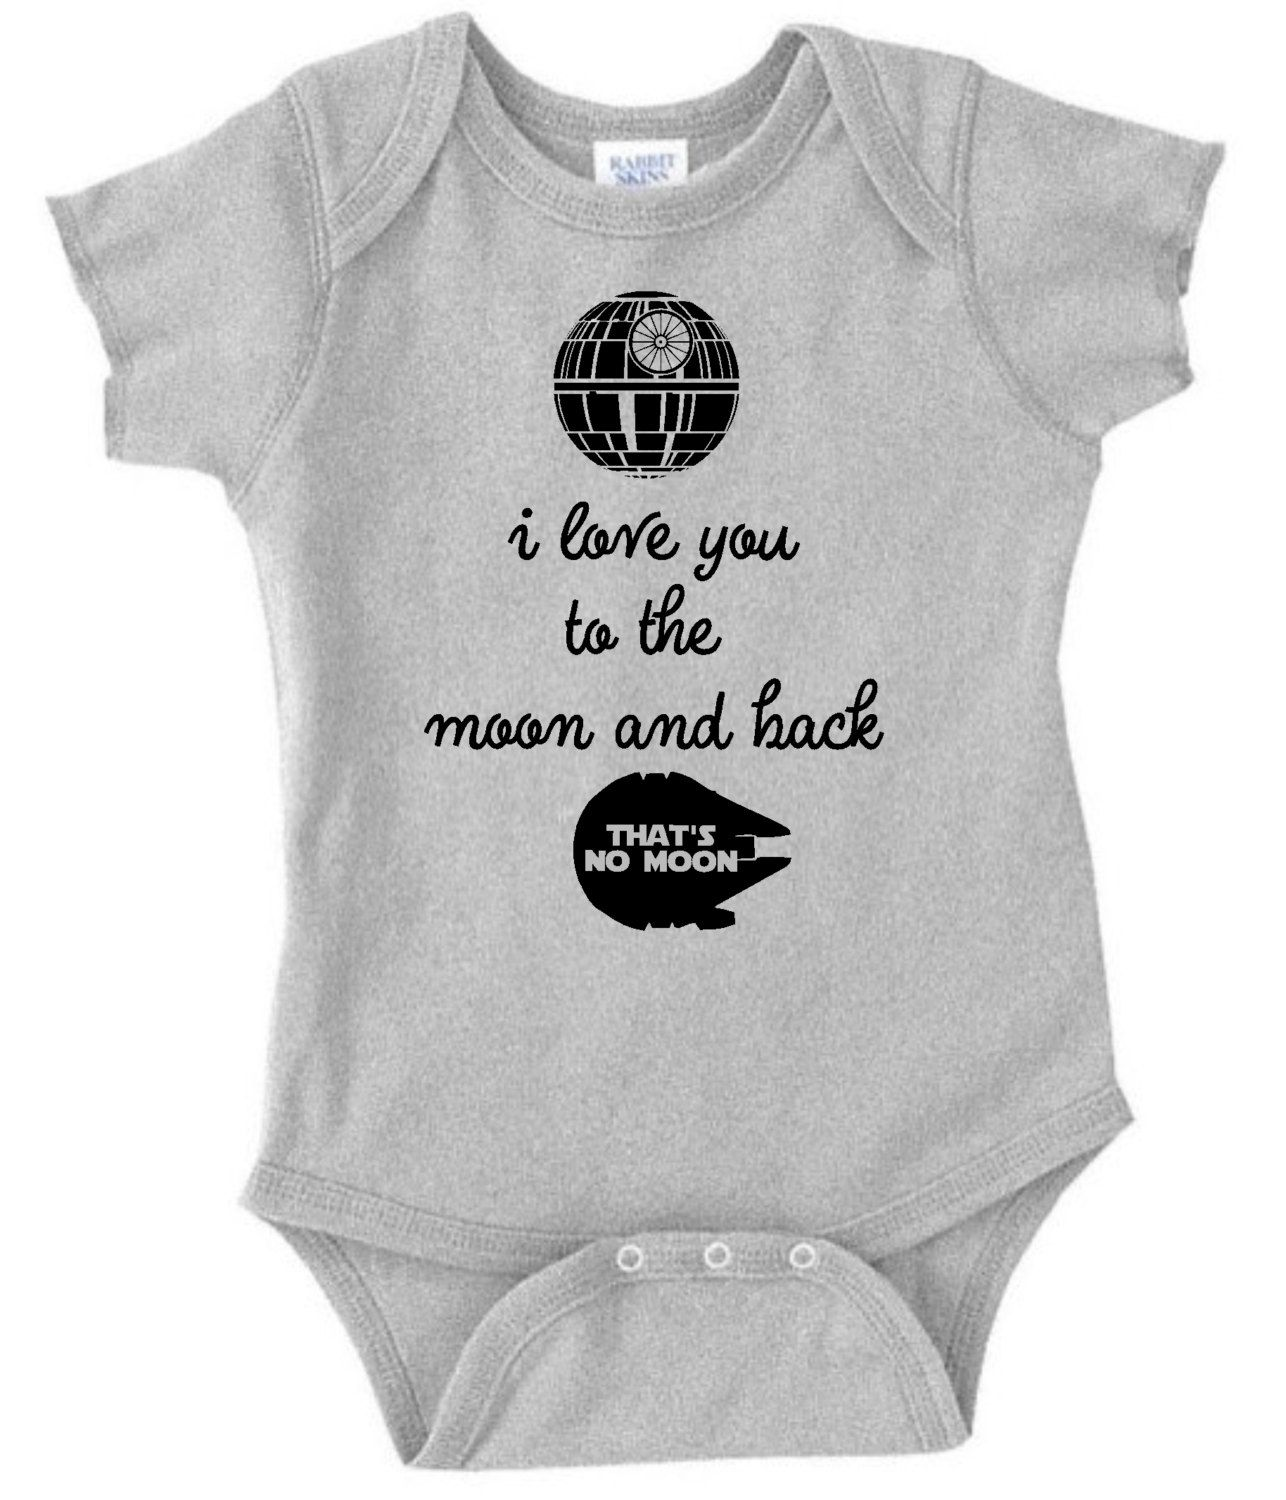 I love you to the moon and back Star Wars inspired onesie and